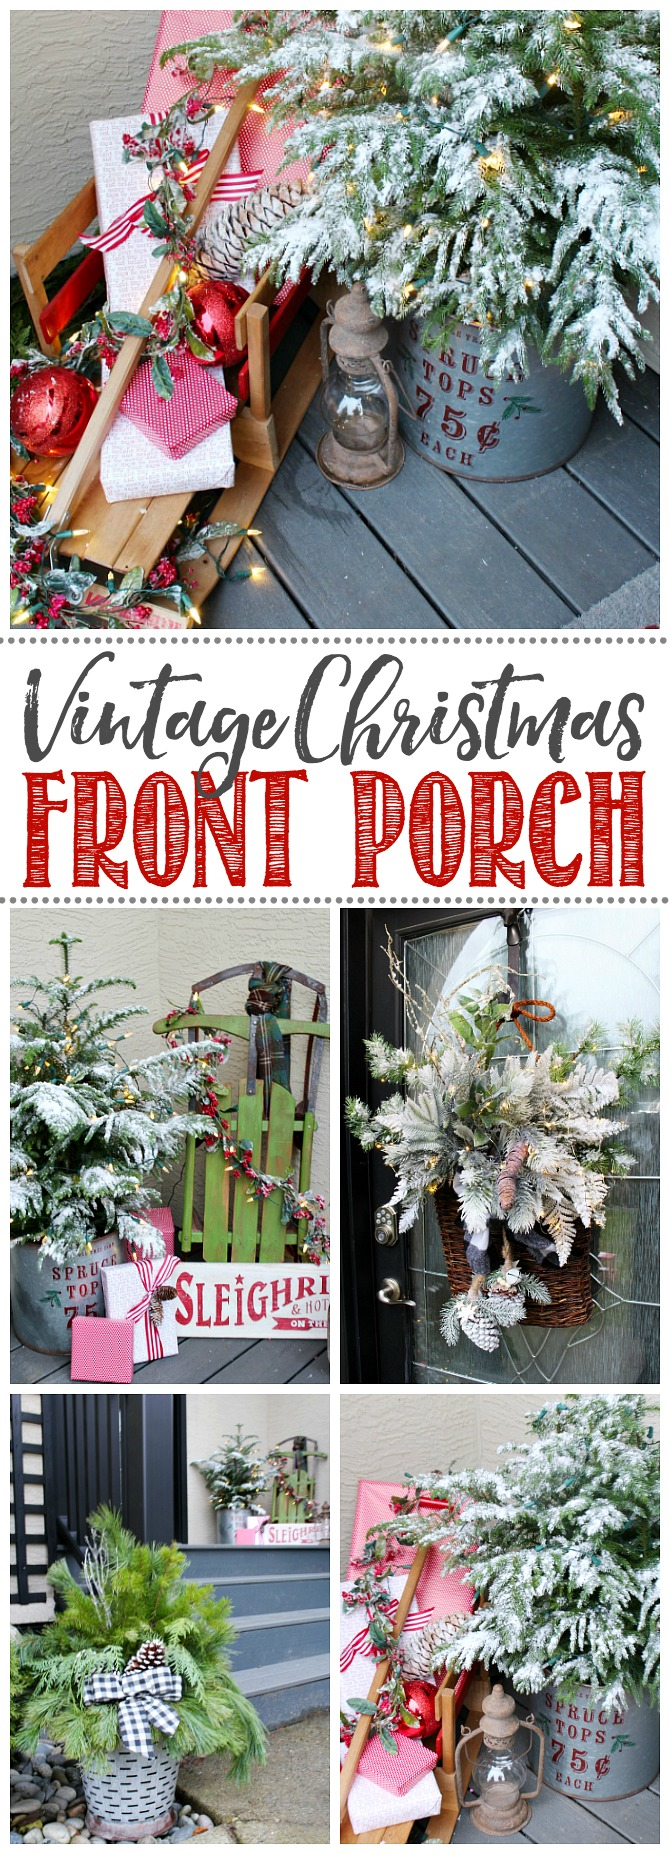 Beautiful ideas to decorate your front porch for Christmas.